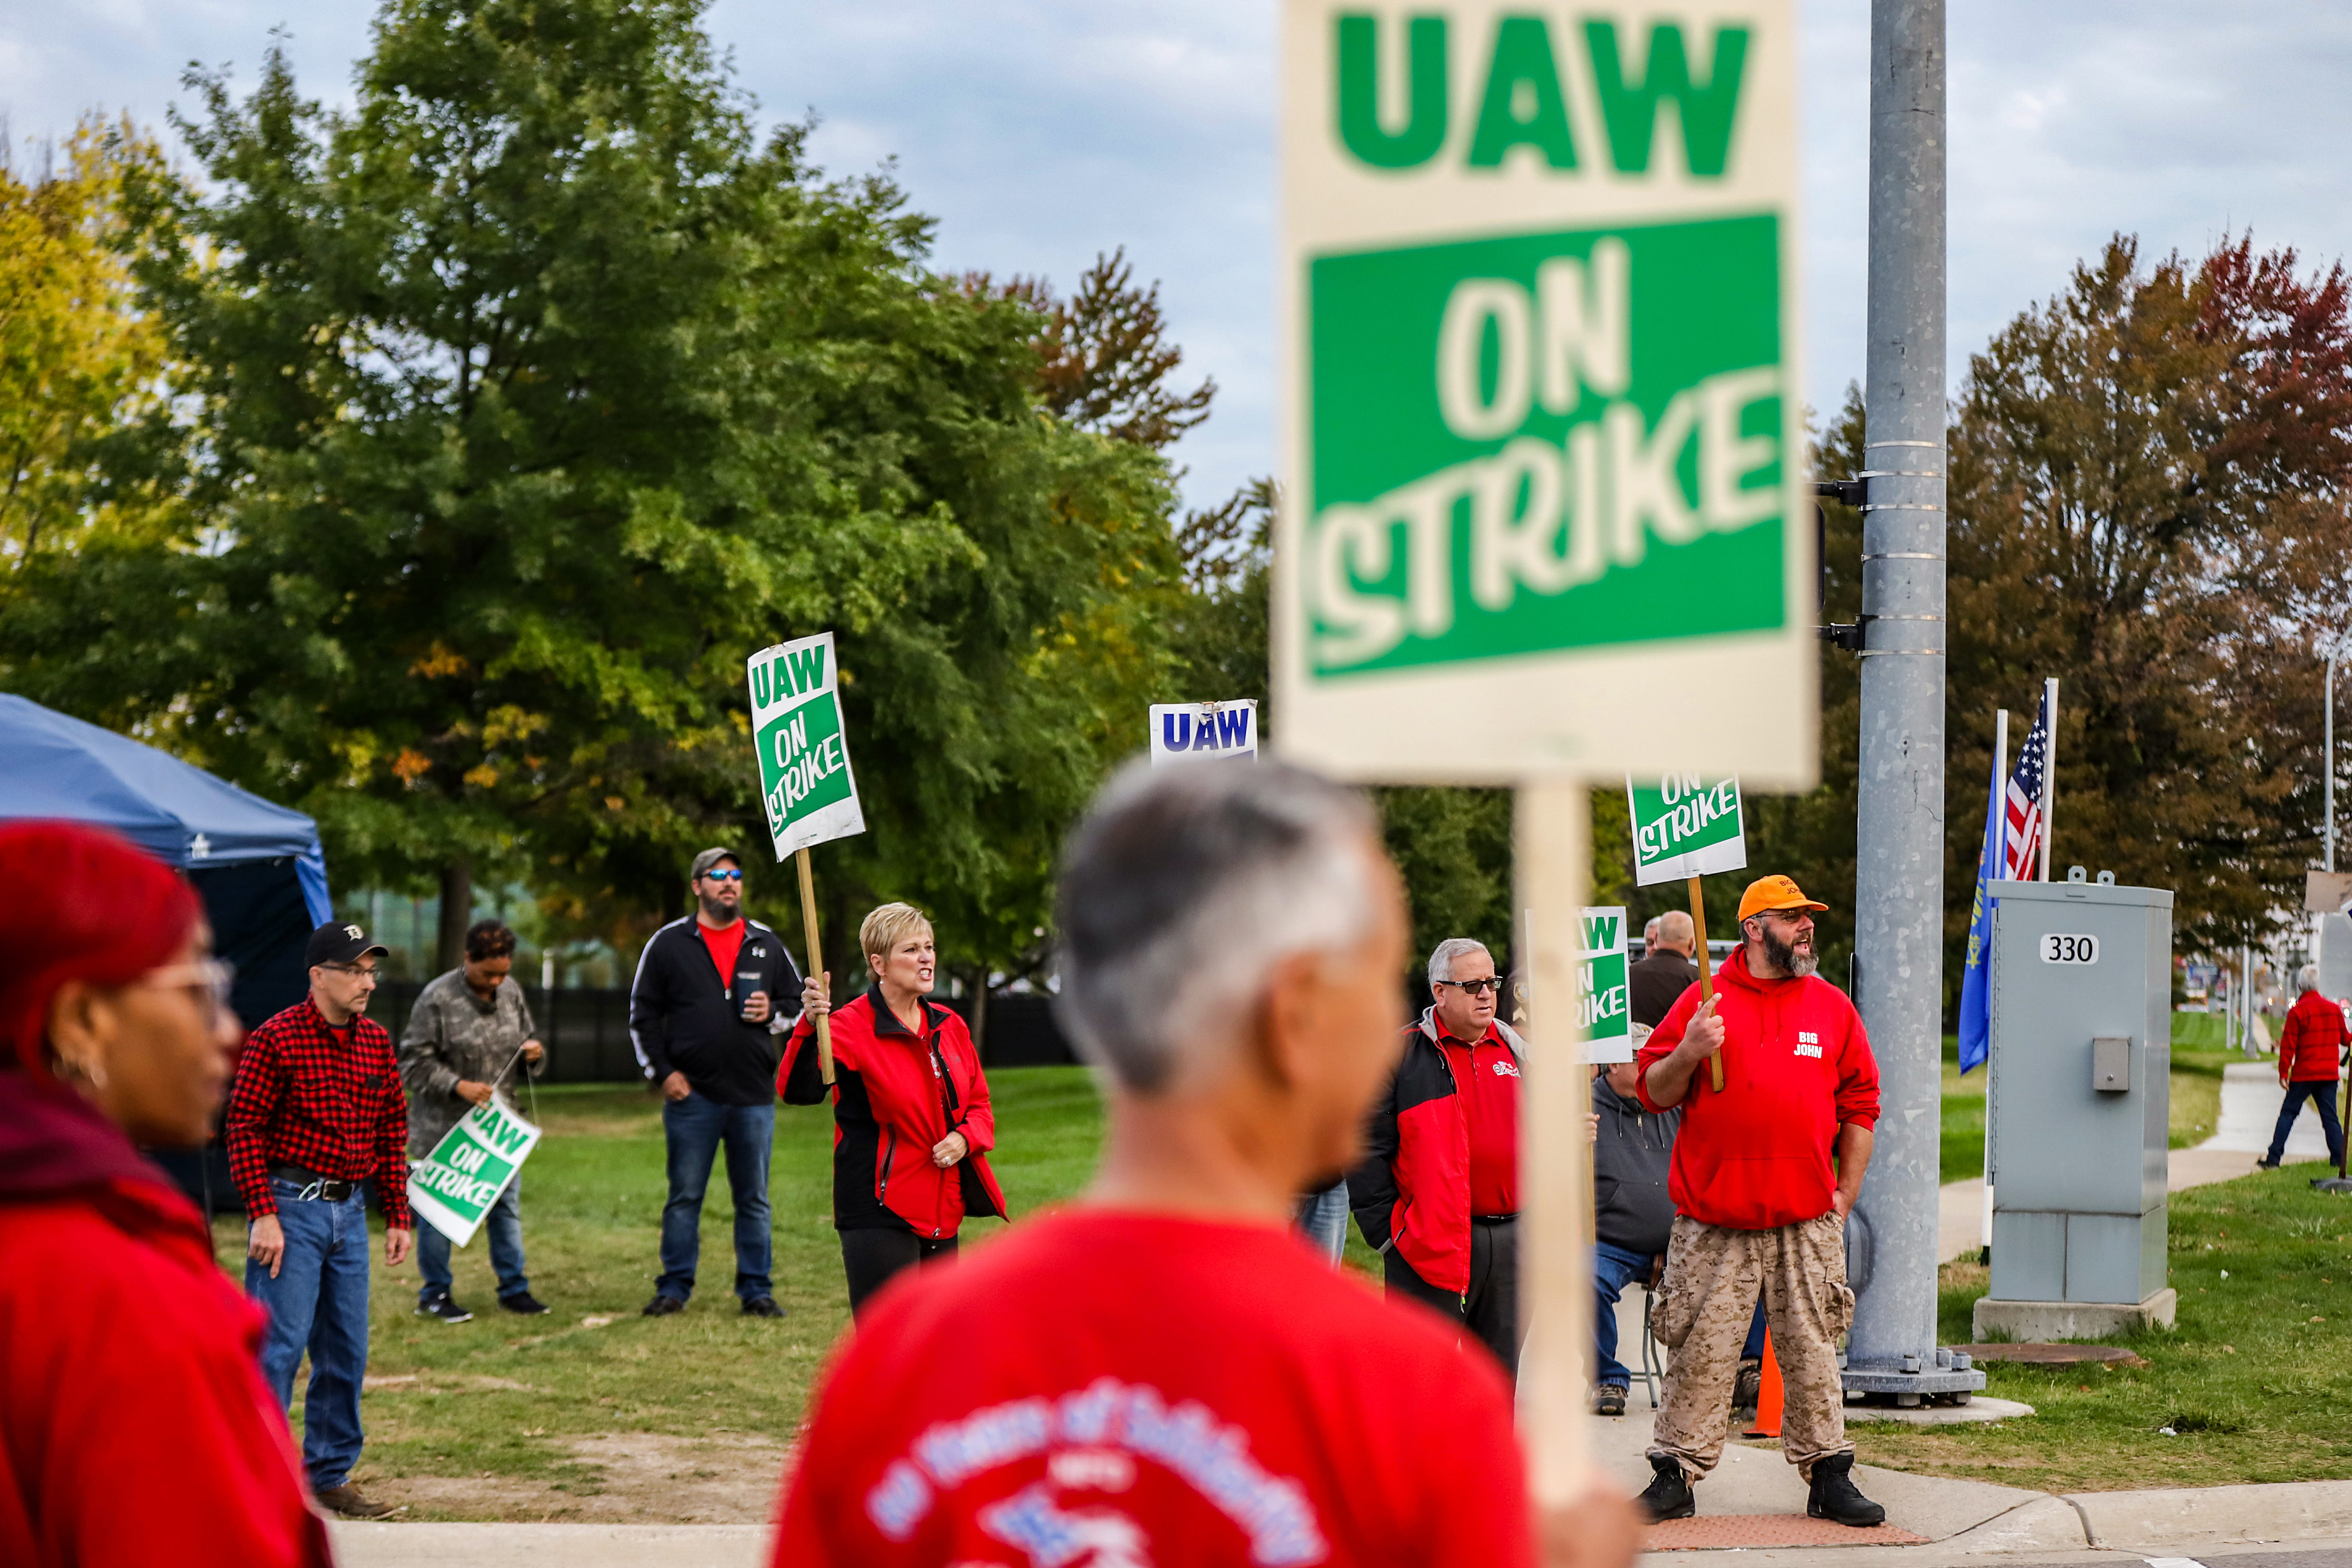 Heres how the UAW-GM ratification process works and what members are voting on